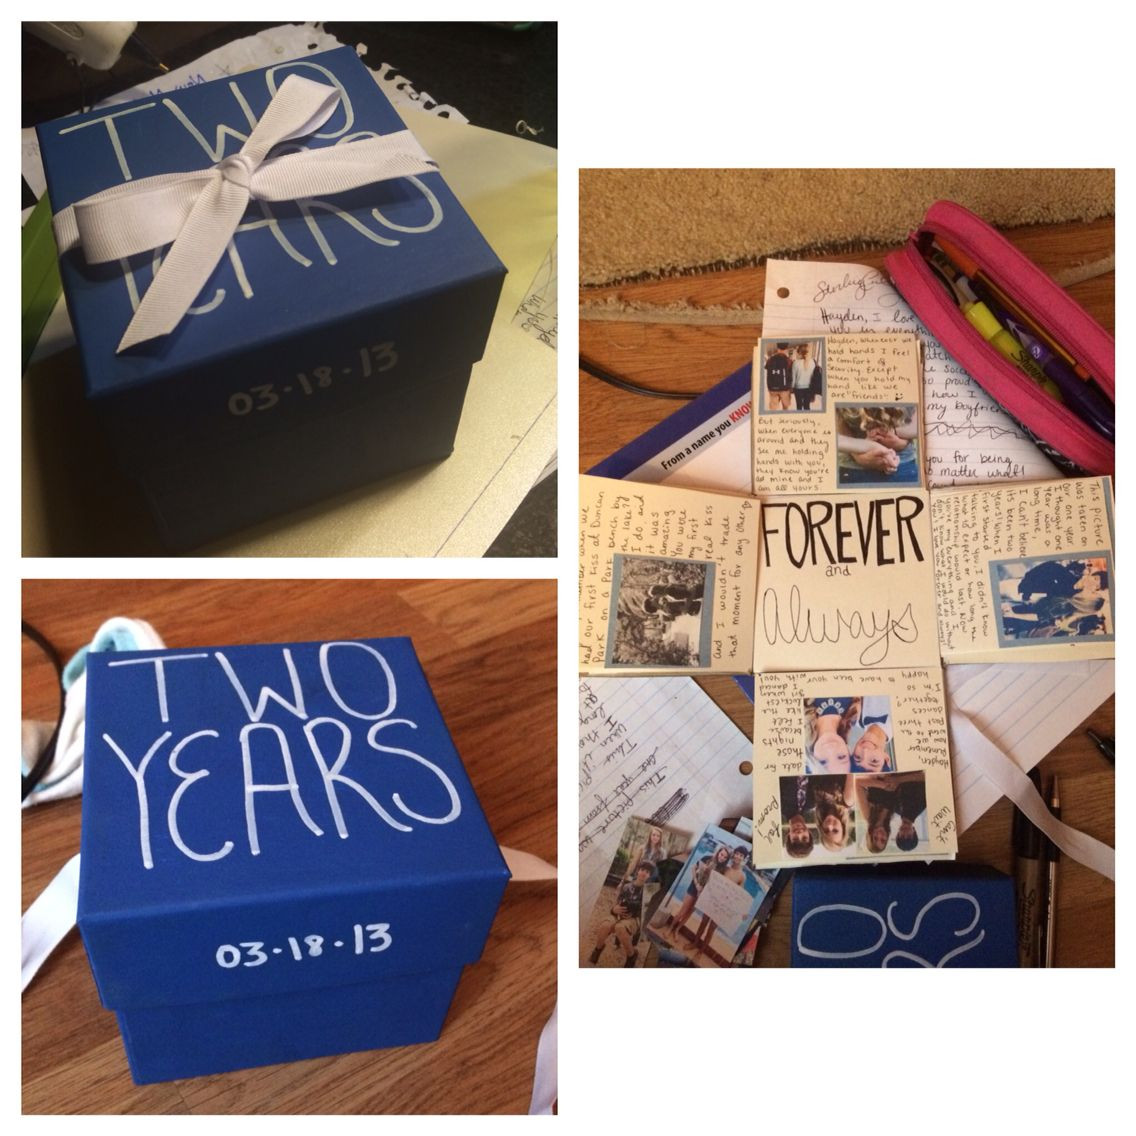 Best ideas about Boyfriend Anniversary Gift Ideas . Save or Pin Anniversary box For my boyfriend and I s 2 year I made Now.